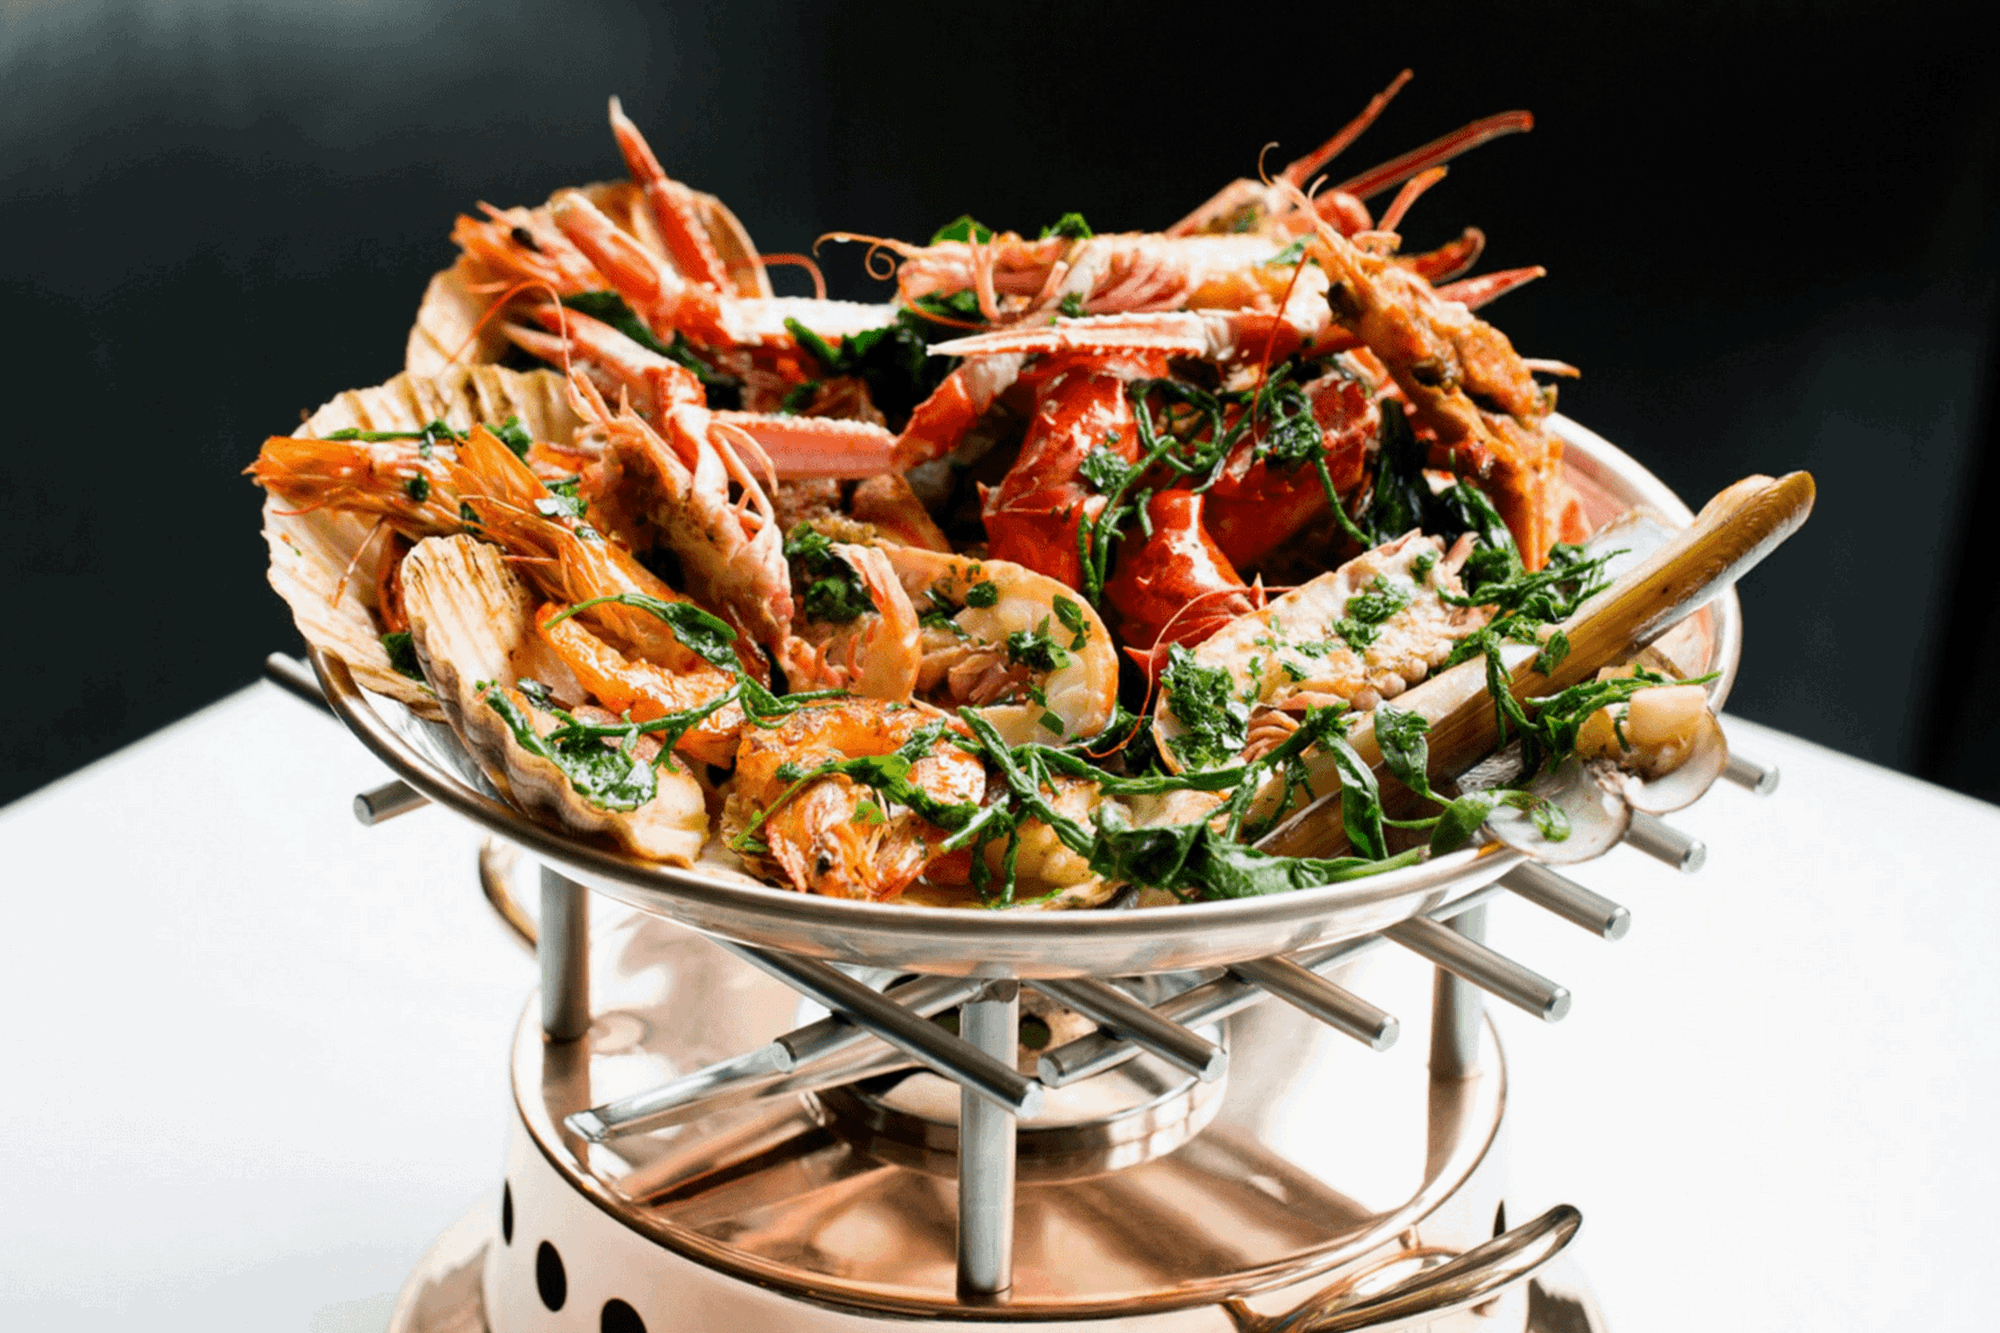 The Best Seafood Restaurant In London